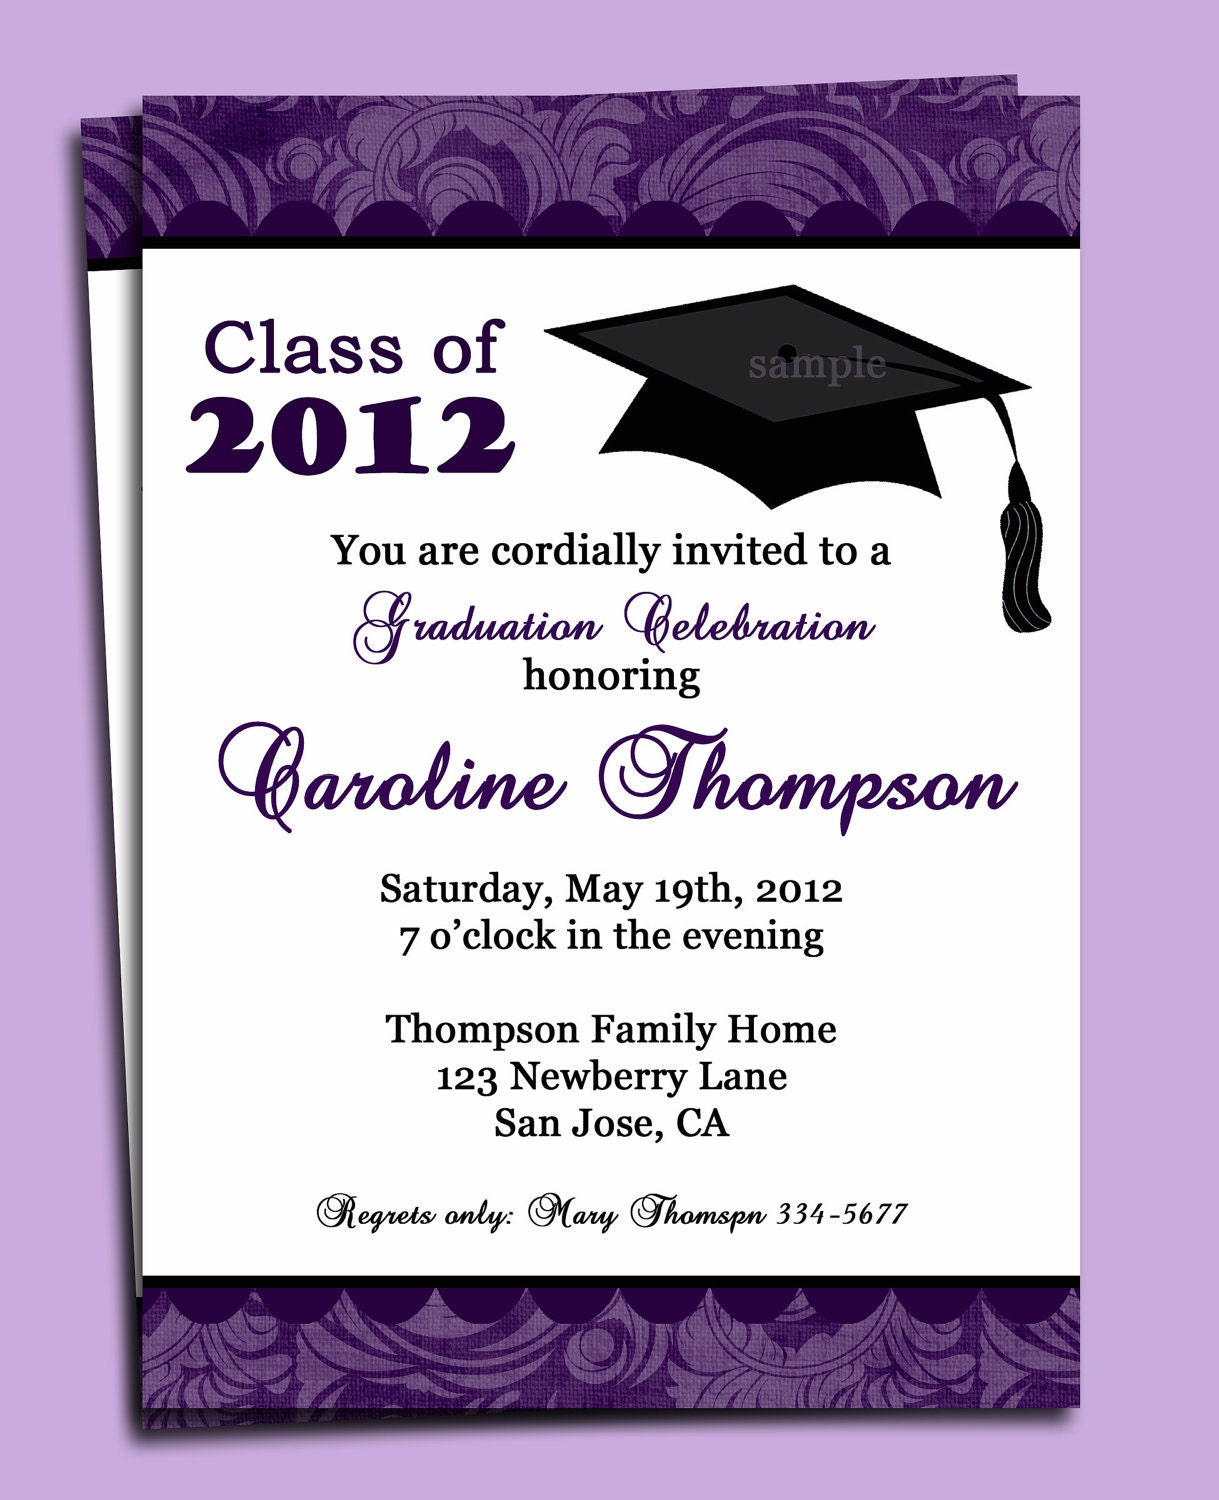 Invitations For Graduation Party can inspire you to create best invitation template